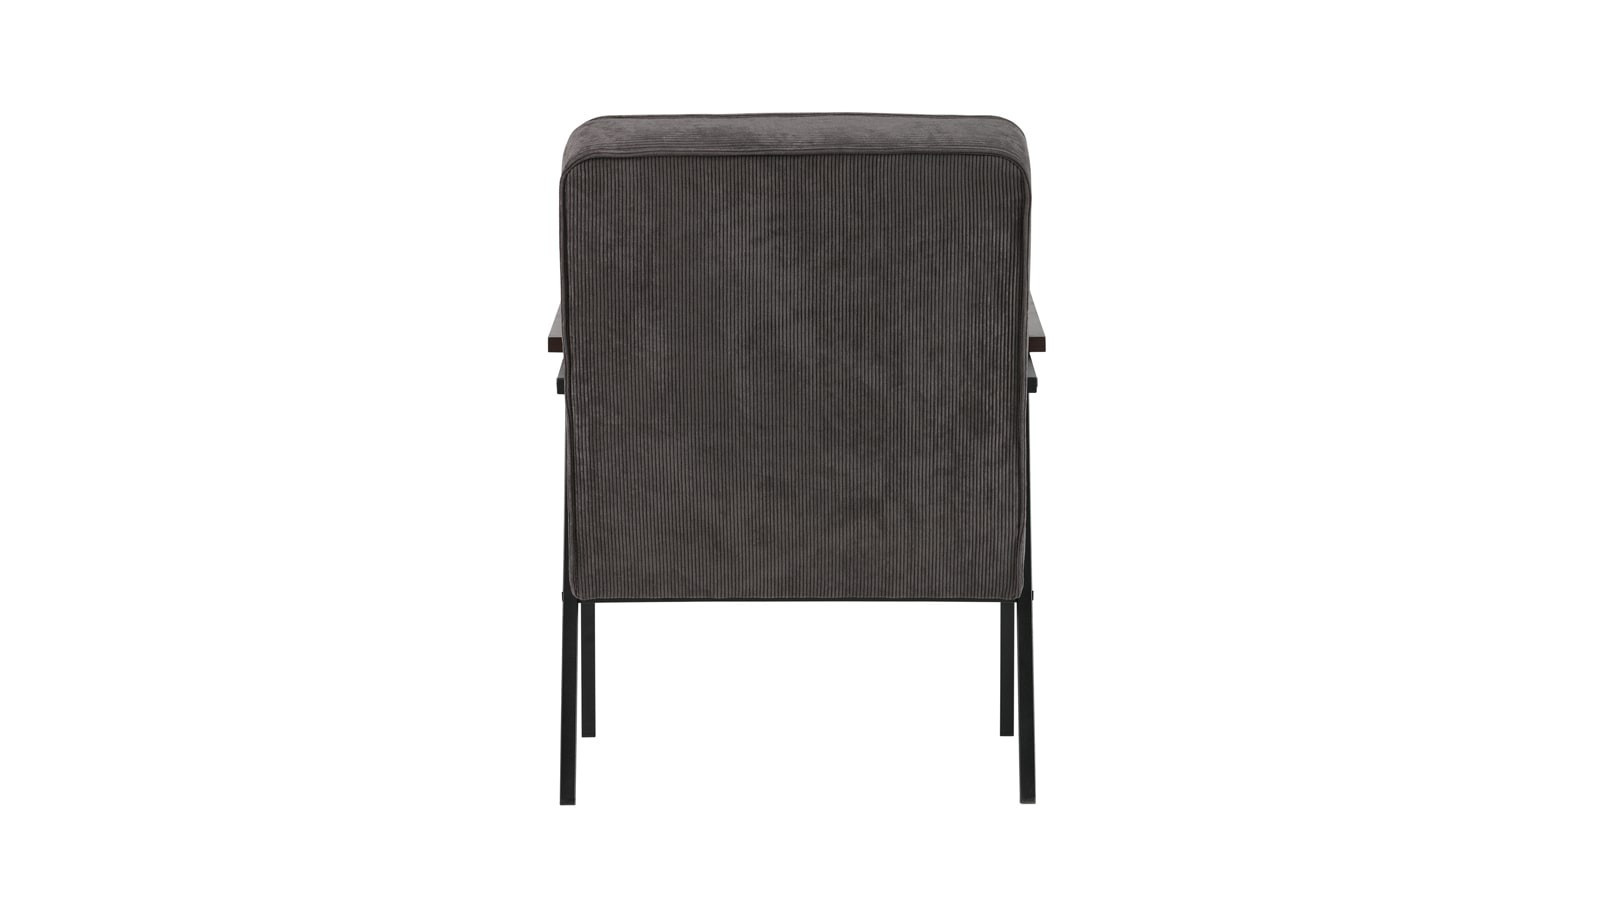 fauteuil berg re en velours synth tique gris anthracite structure en m tal collection doris. Black Bedroom Furniture Sets. Home Design Ideas